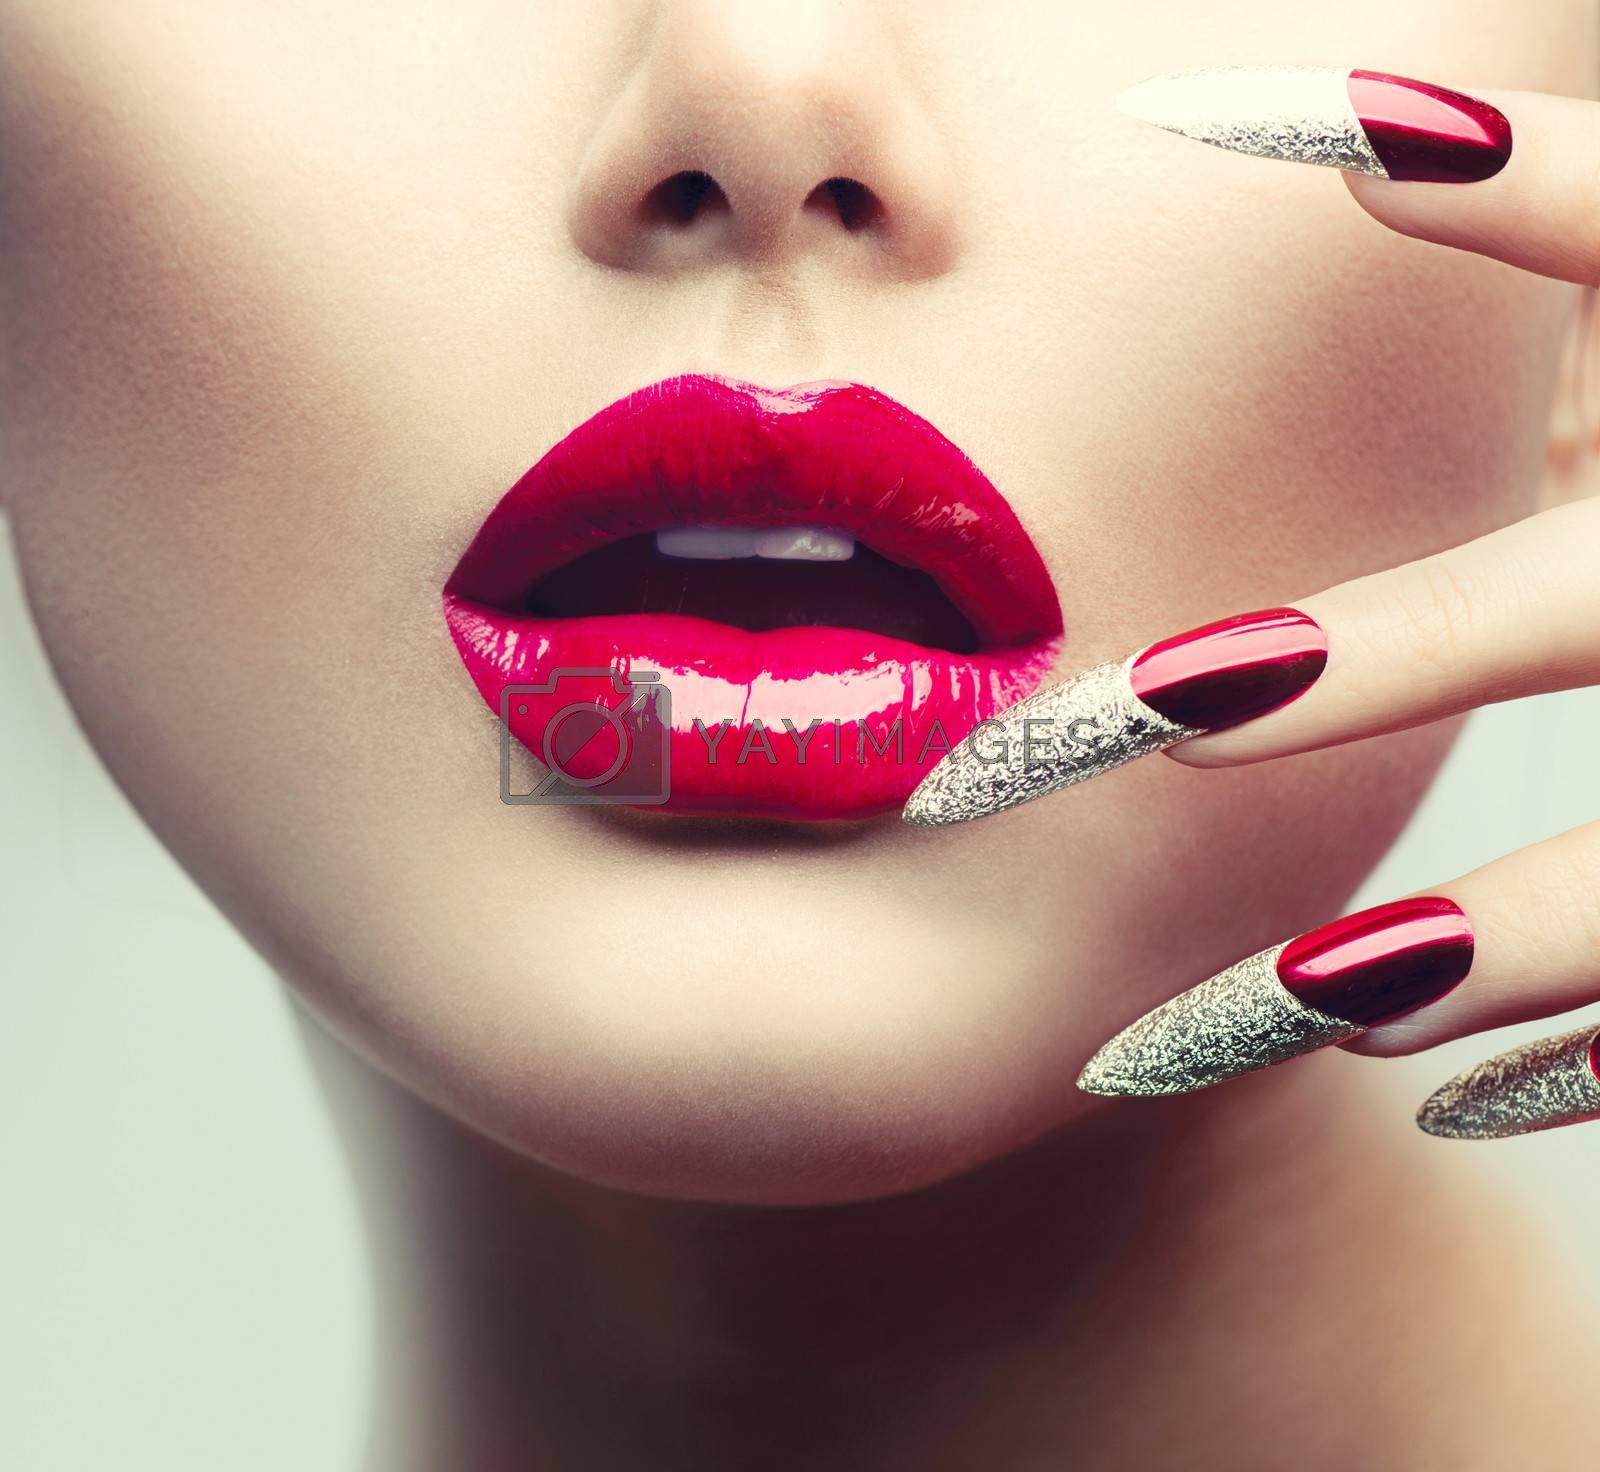 Makeup and Manicure. Red Long Nails and Red Glossy Lips